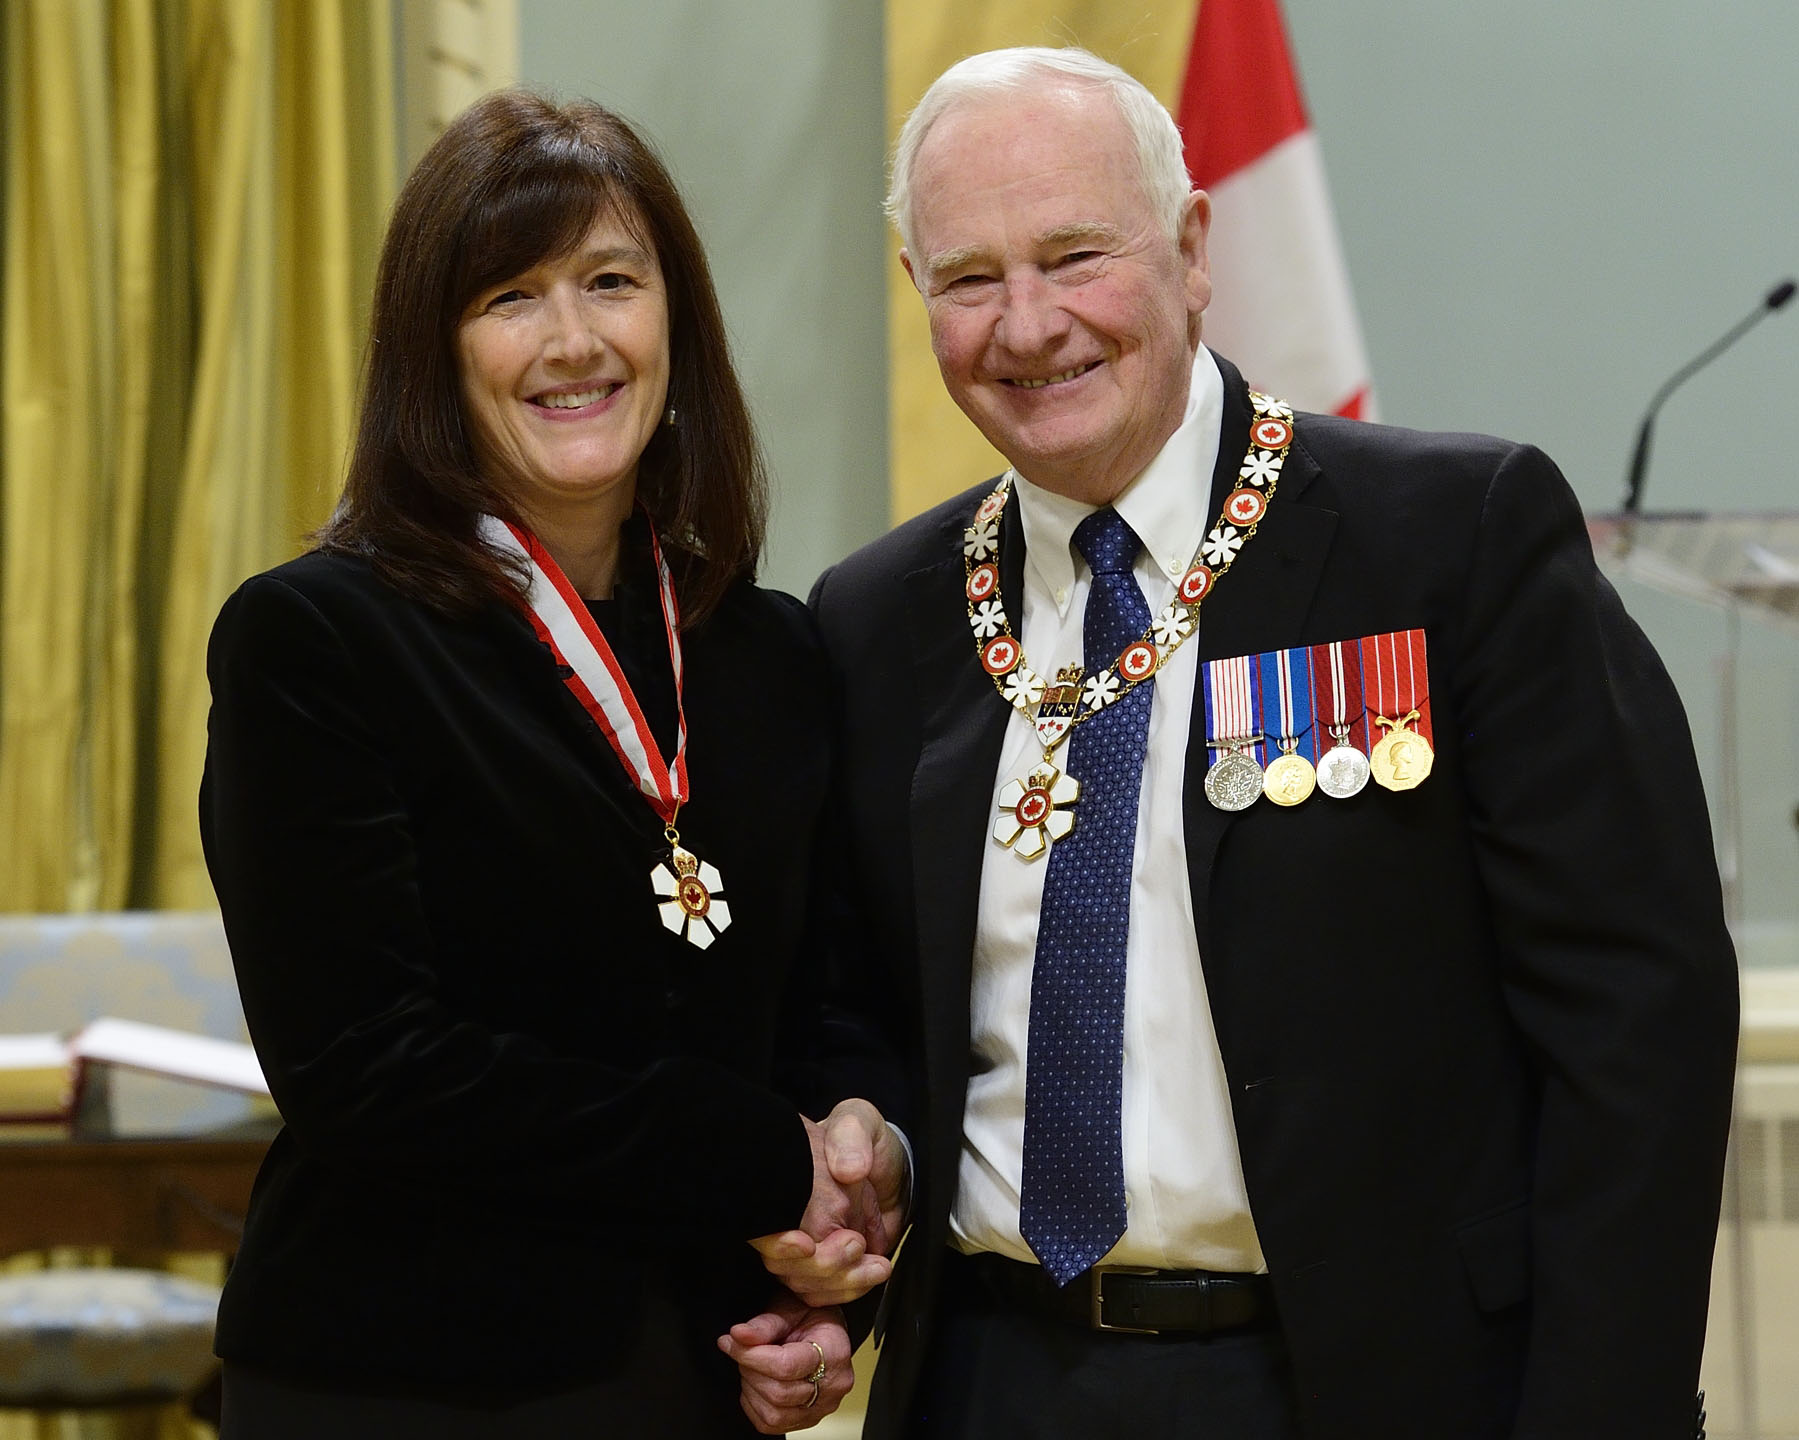 Geochemist Barbara Sherwood Lollar has earned global renown for her contributions to environmental preservation and to our understanding of life underground. A Canada Research Chair and professor in earth sciences at the University of Toronto, she pioneered the use of stable isotopes to pinpoint sources of contamination in our groundwater resources, a breakthrough that is helping practitioners remediate polluted areas. While conducting field research in South Africa and Canada, she discovered and analyzed environments conducive to life deep within the Earth's crust, a finding that has implications for the search for life on other planets.